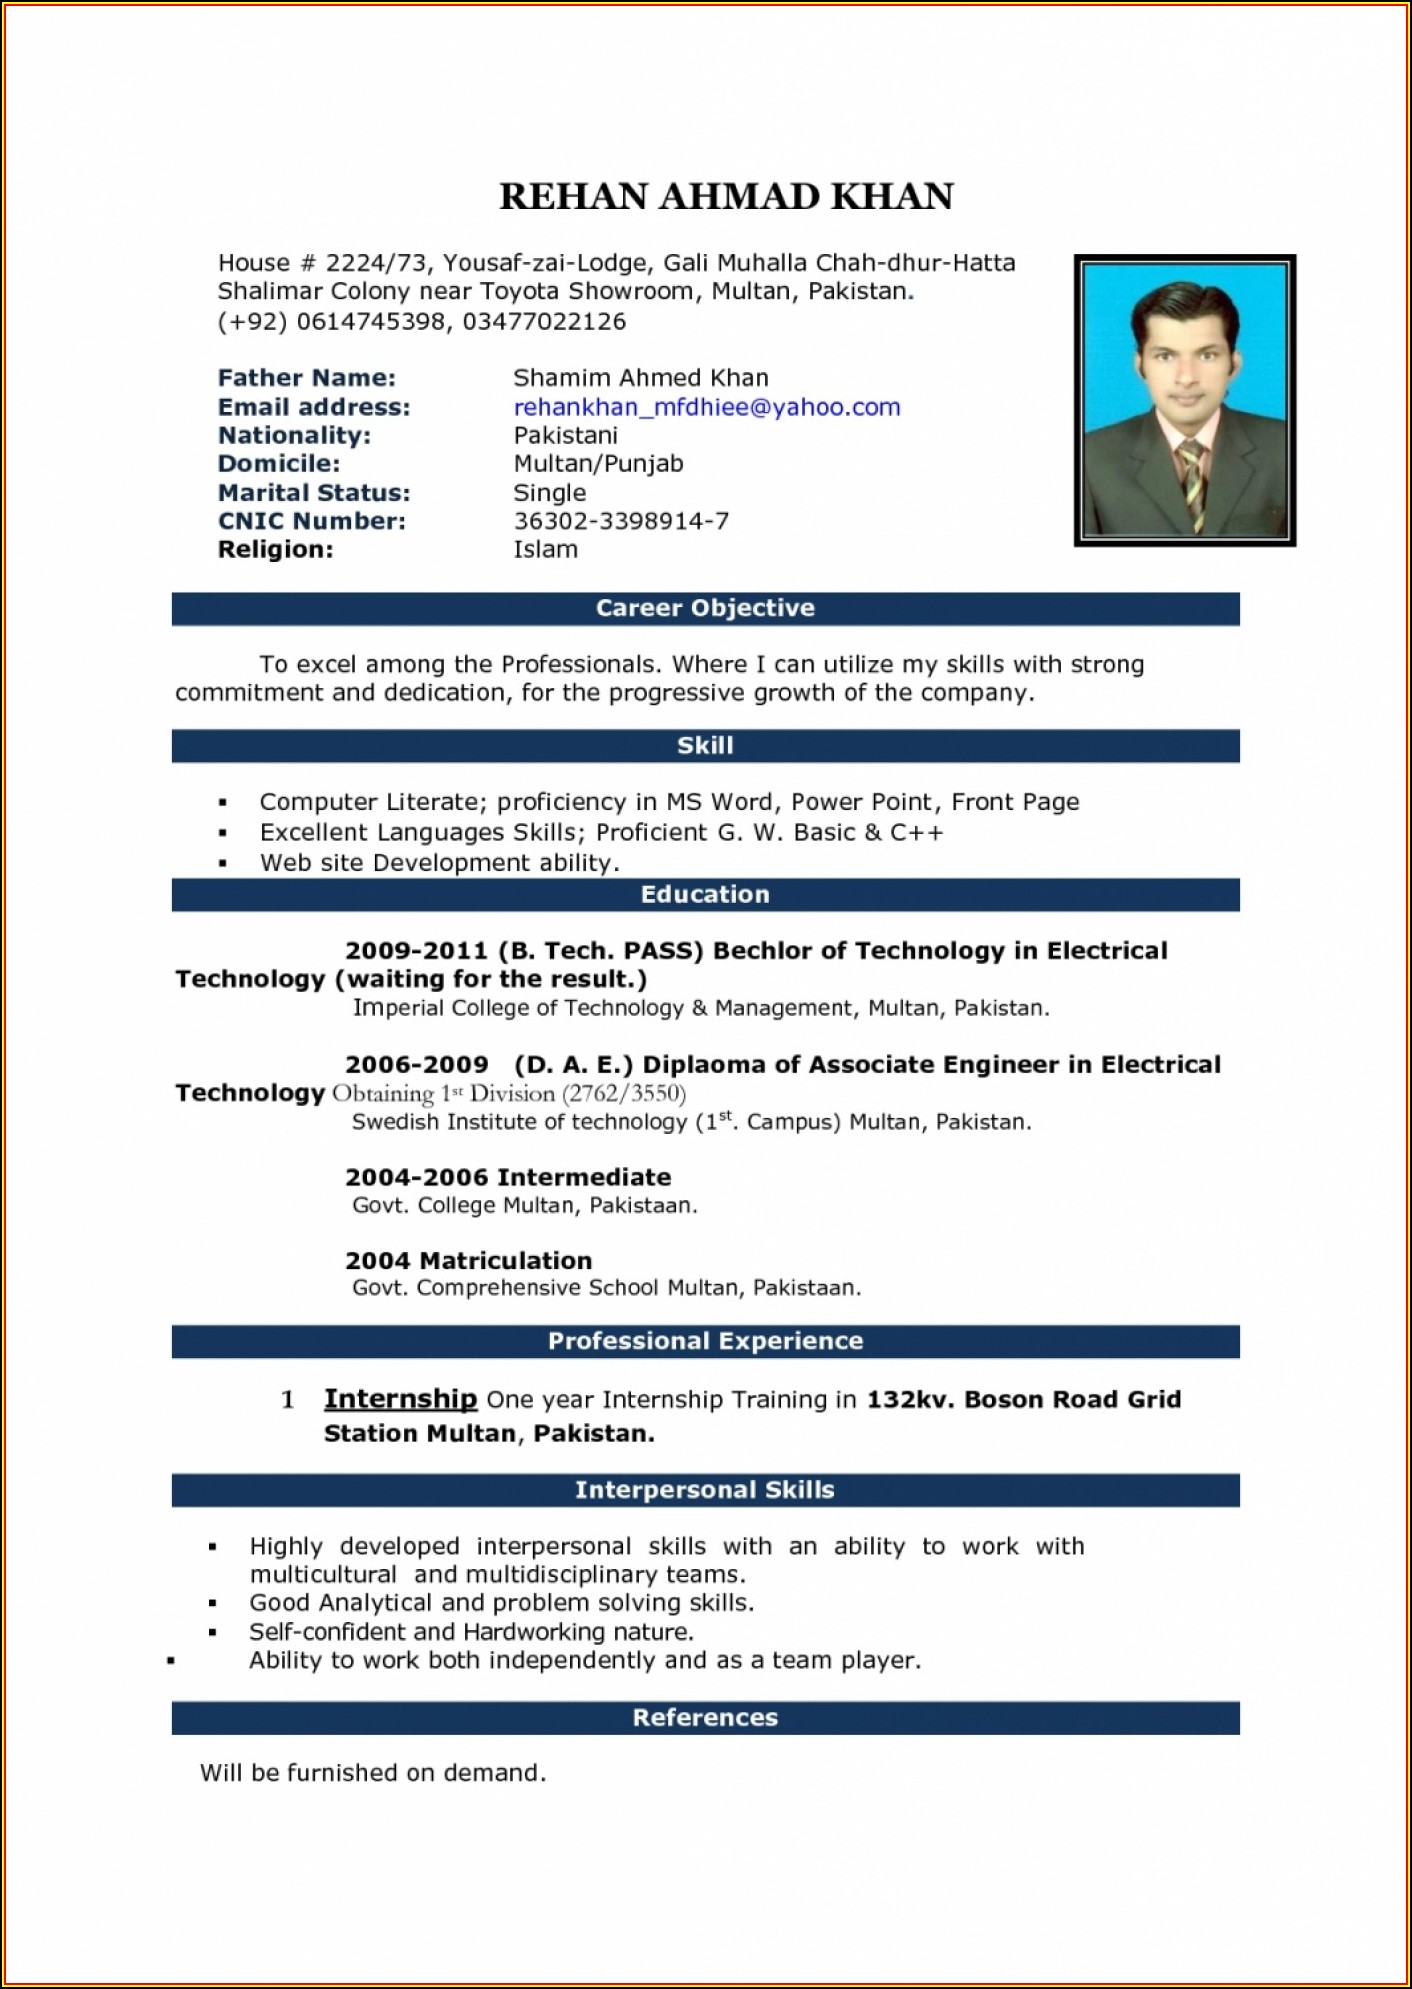 Teacher Resume Format In Word Free Download Indian